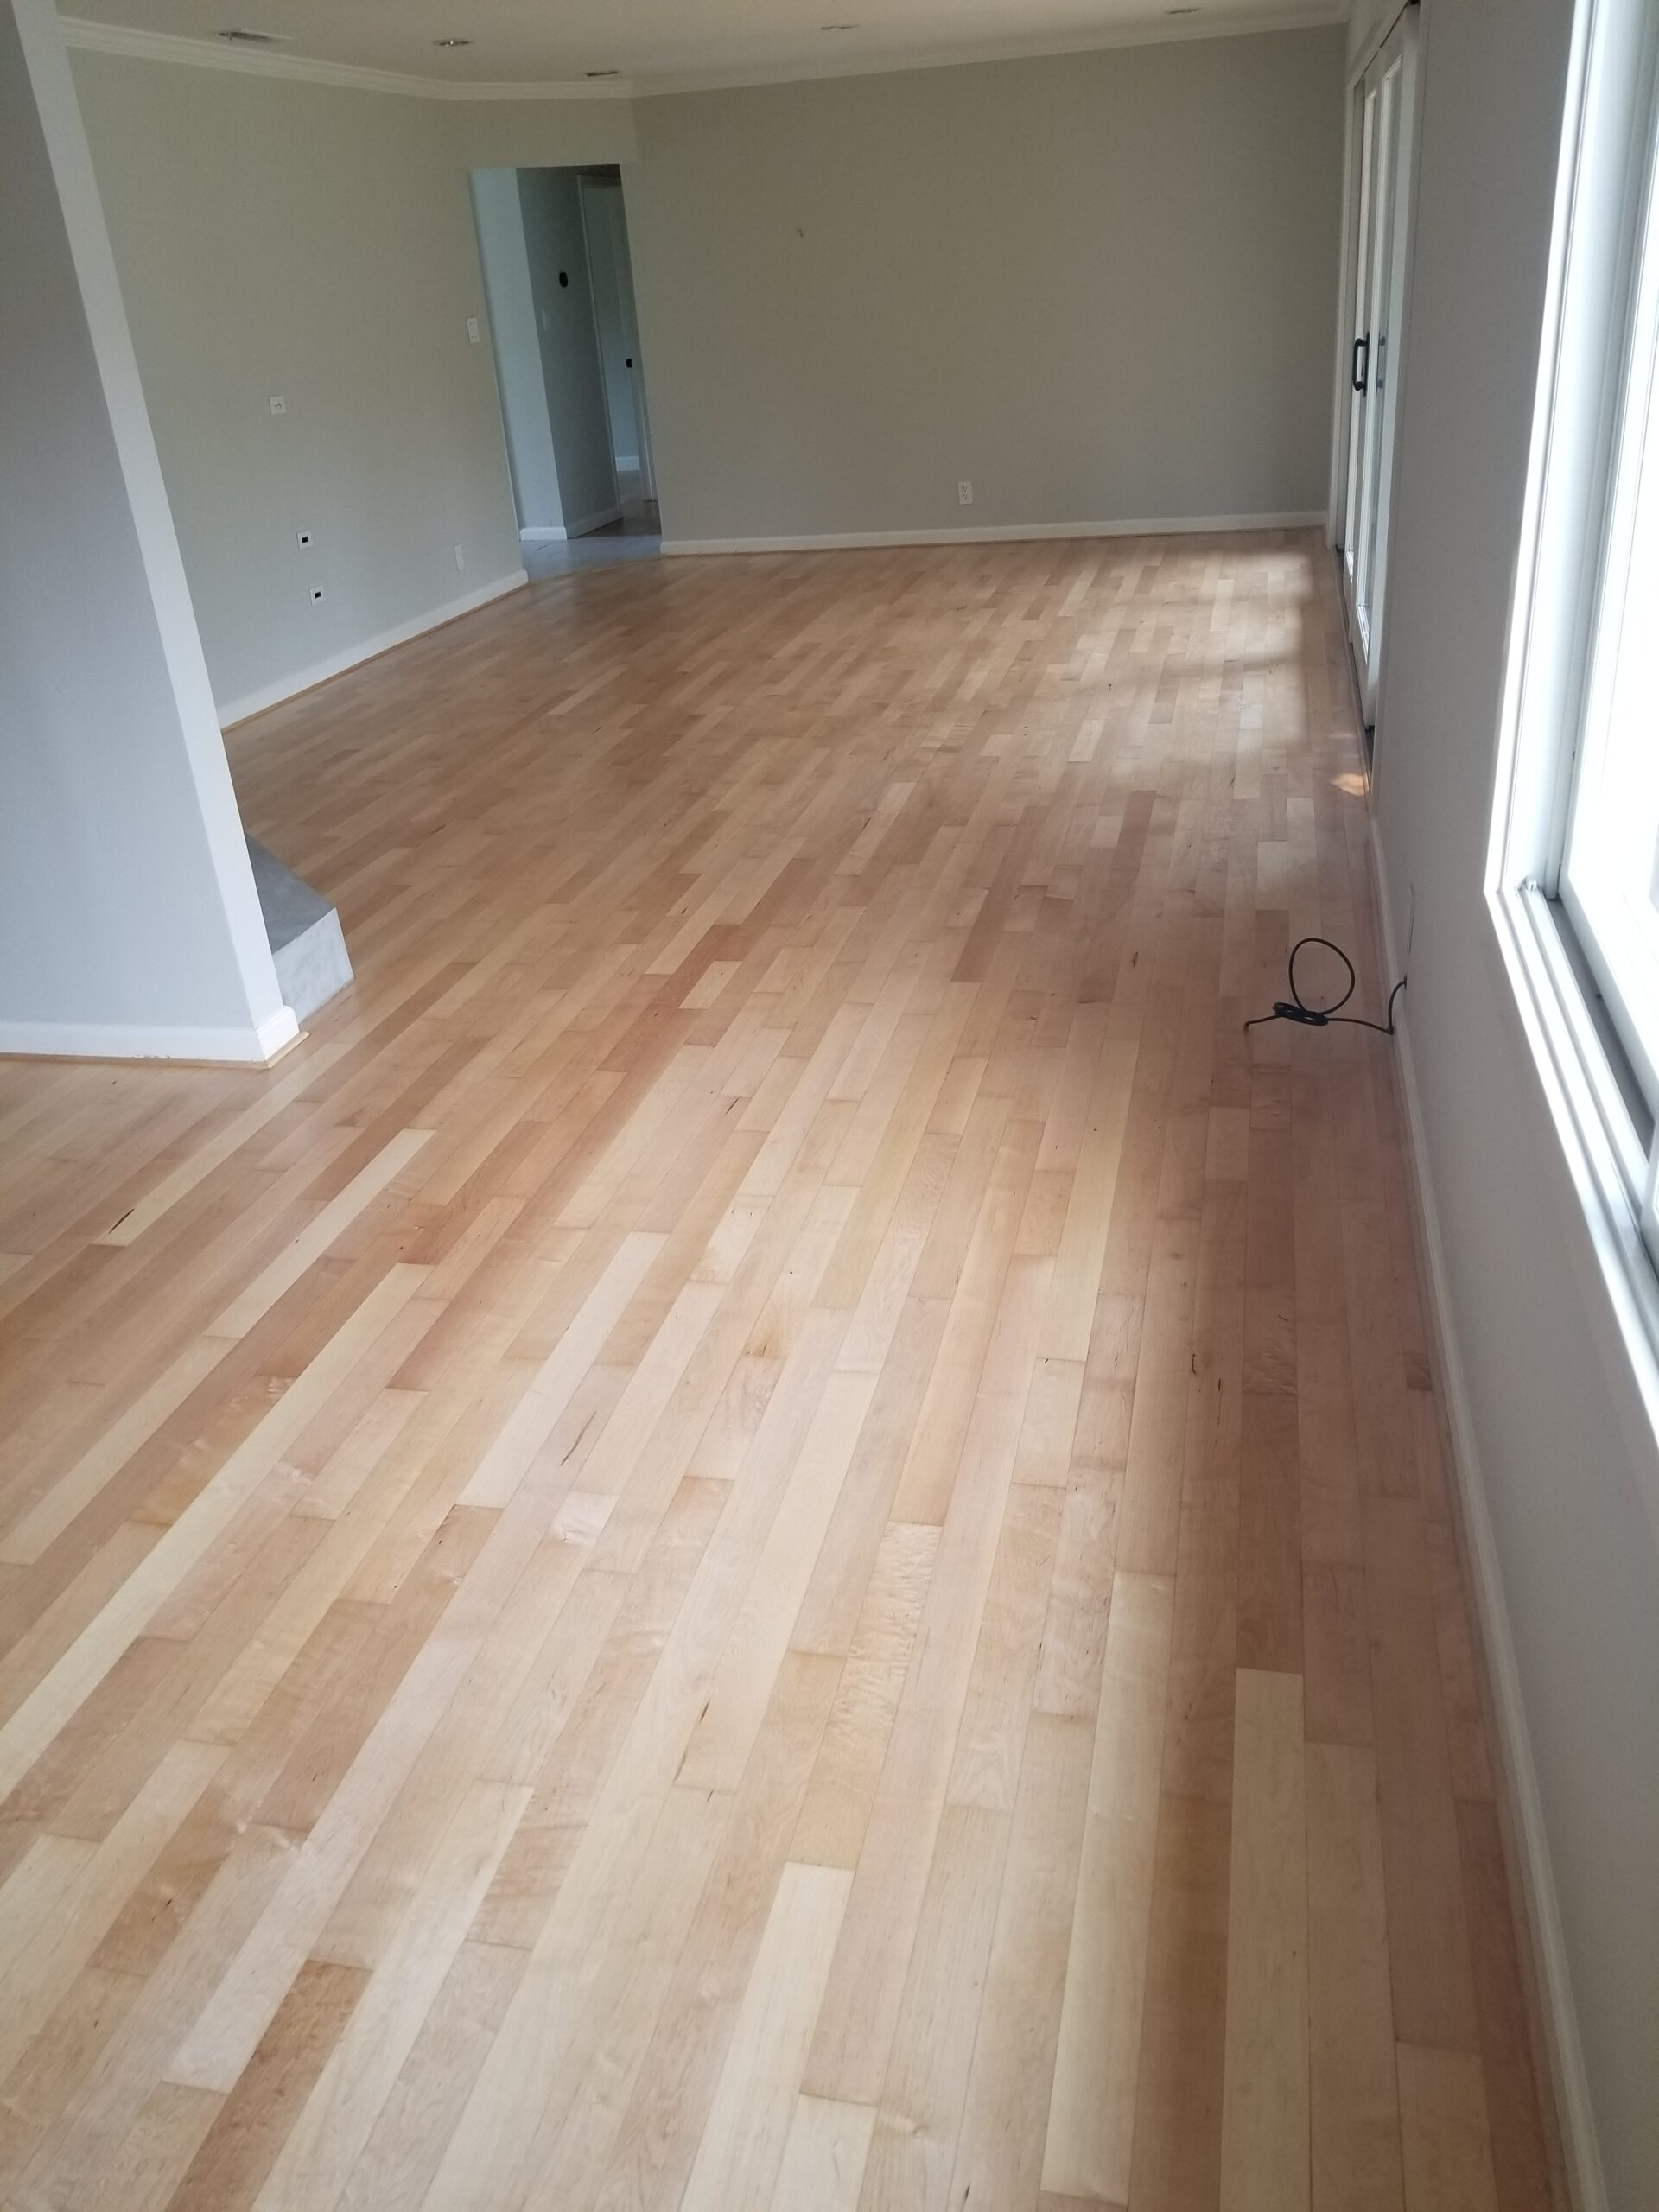 Los Altos residential: refinish amd coat maple wood -- living room to dining room view.